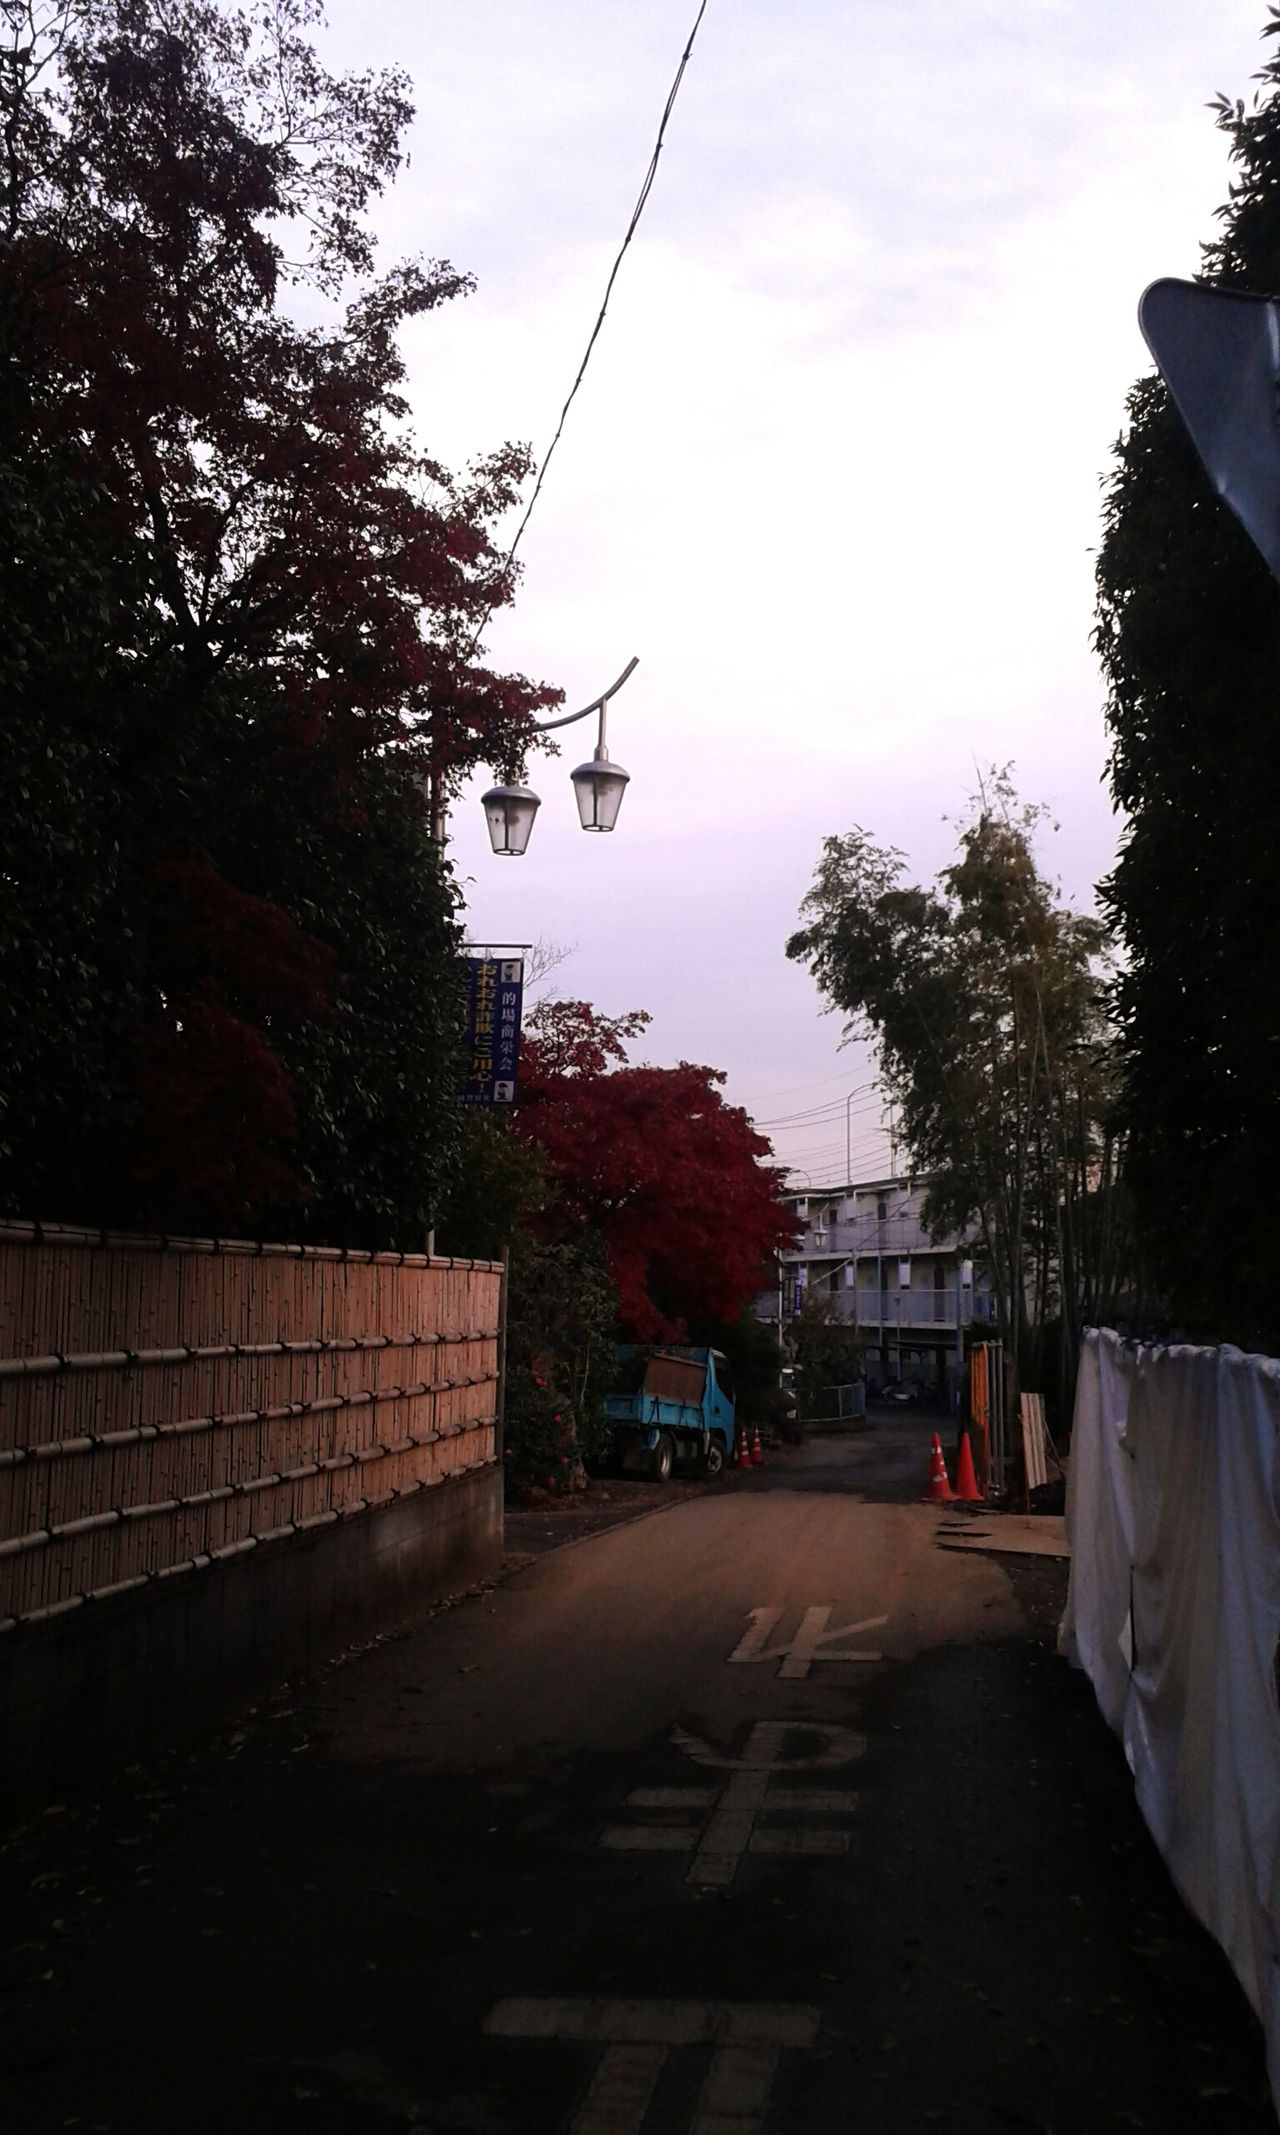 Japan Neighborhood Fall Autumn Tree Sky Cloud - Sky Wet Outdoors City Road Day No People Nature Afternoon